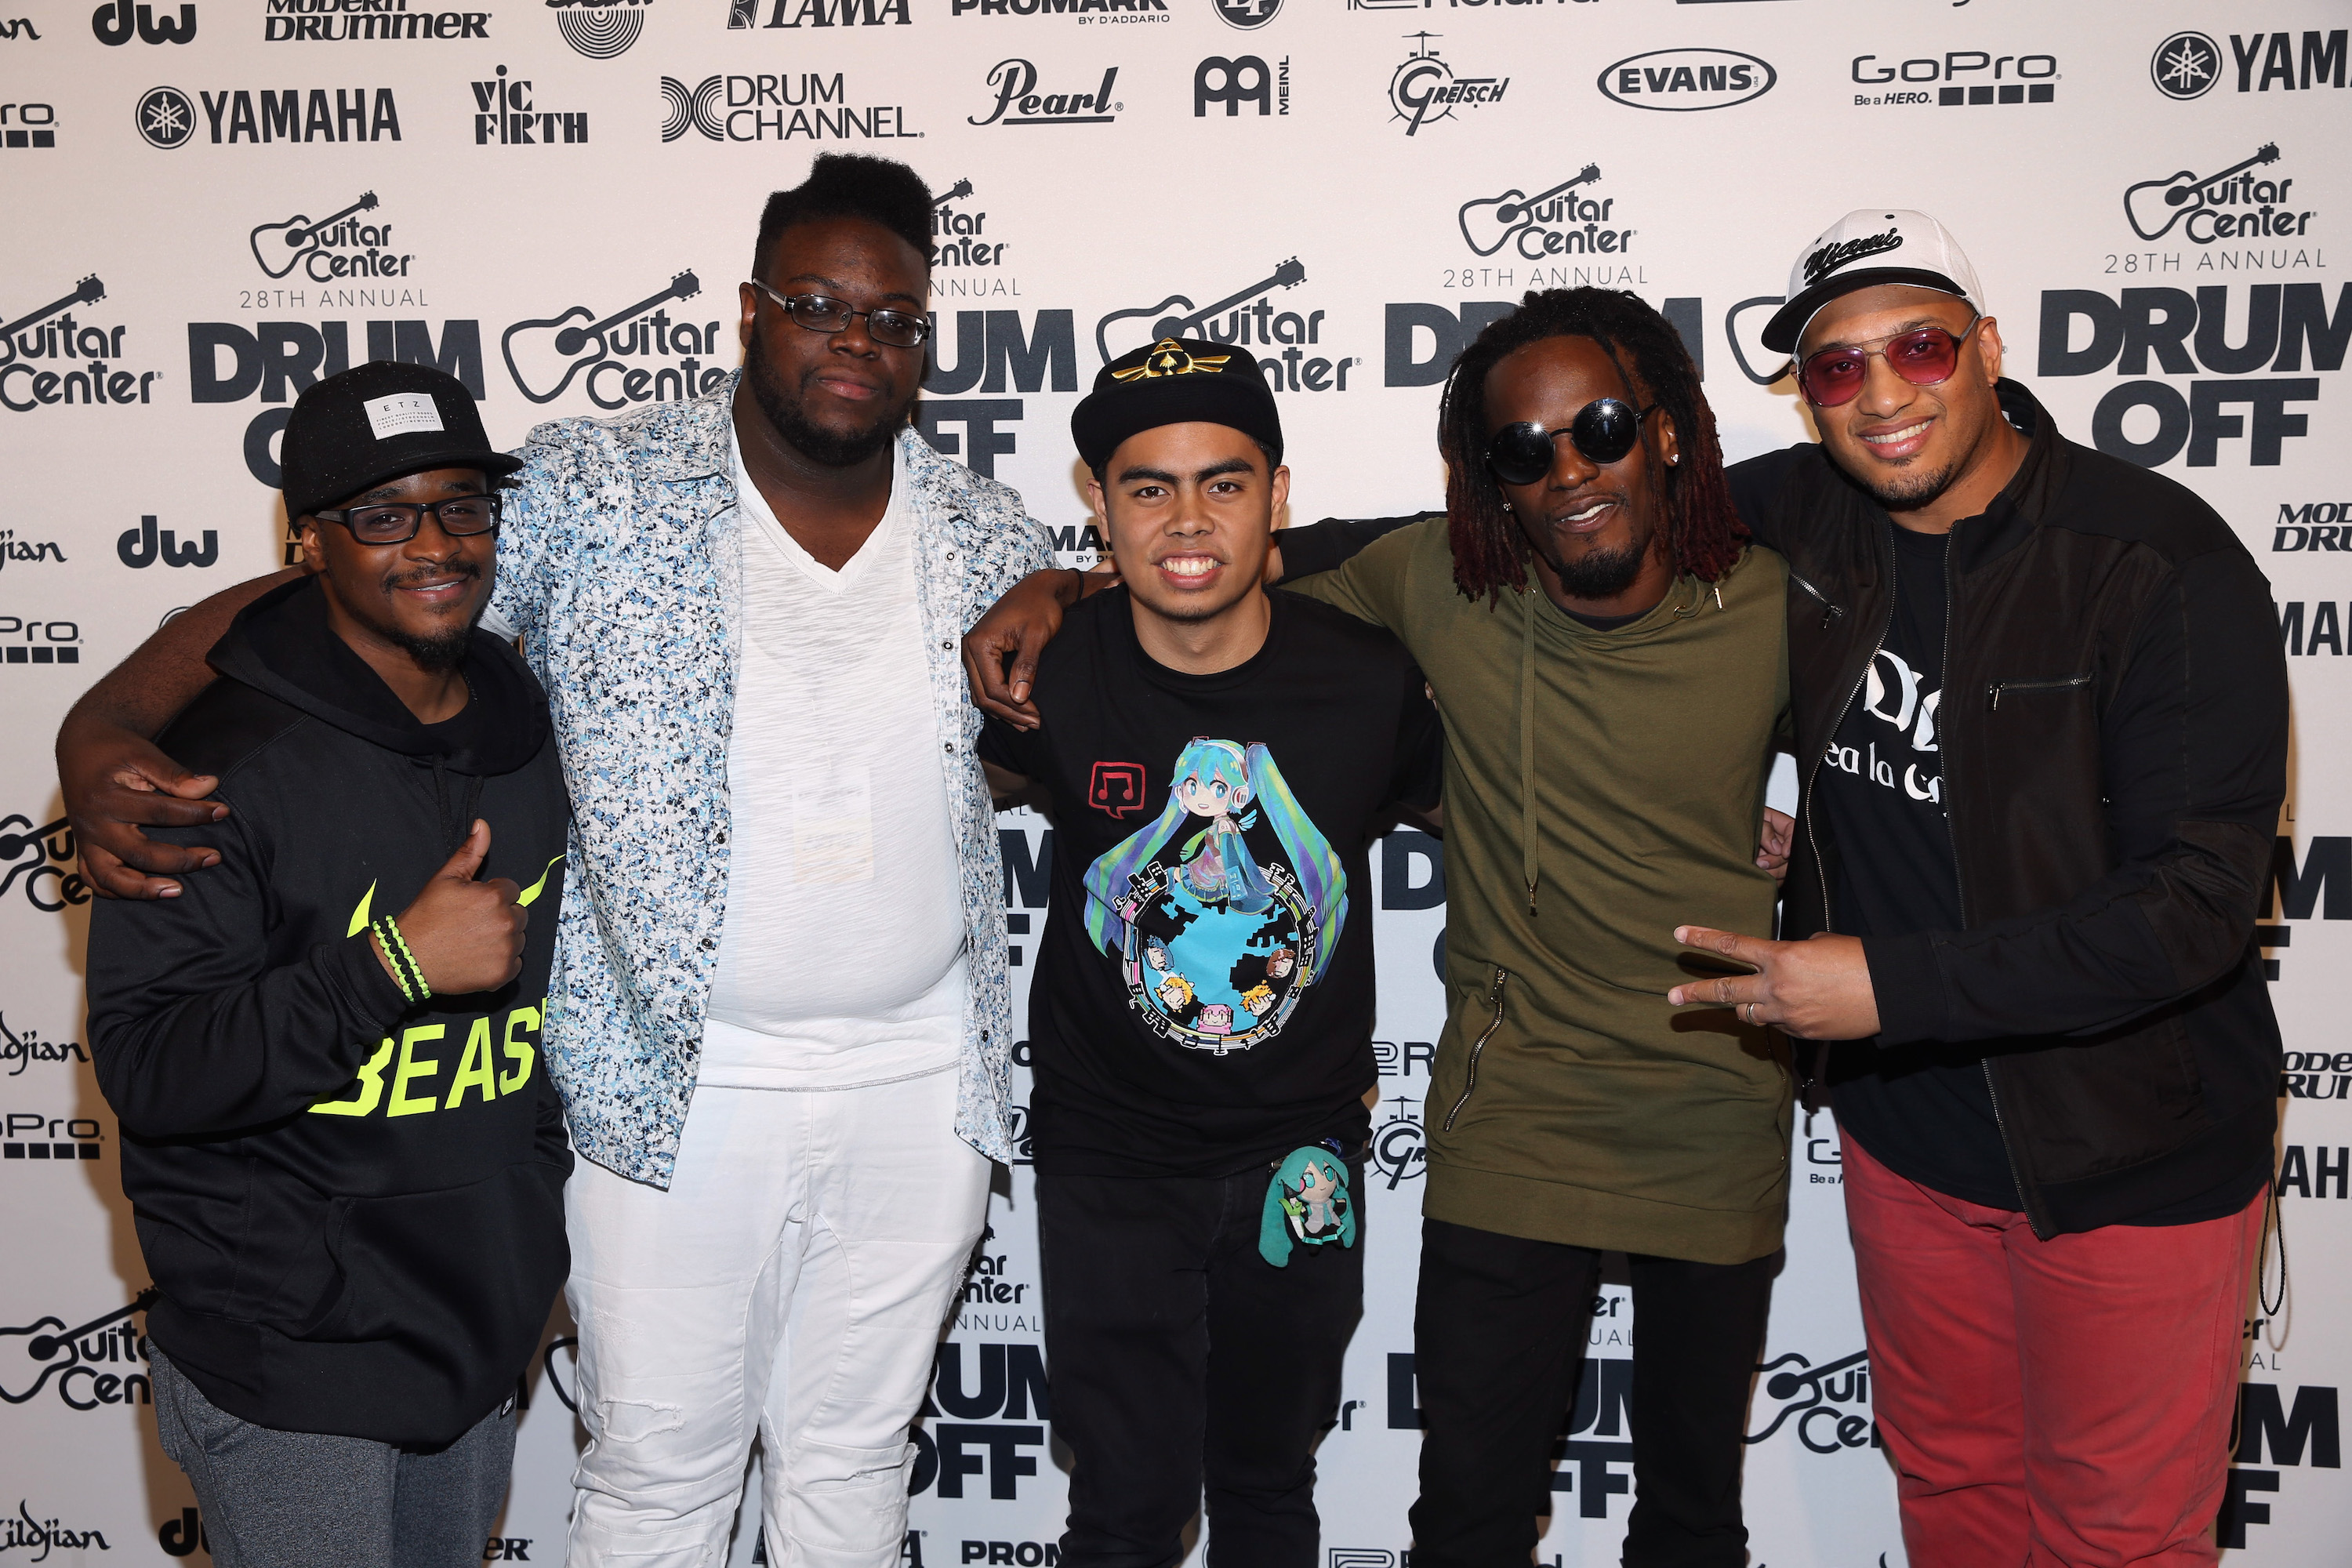 LOS ANGELES, CA - JANUARY 14:  (L-R) Finalists Anthony Burns, Kwesi Robinson, Mark Pacpaco, Fred Boswell and Hilario Bell attend Guitar Center's 28th Annual Drum-Off Finals Event at The Novo by Microsoft on January 14, 2017 in Los Angeles, California.  (Photo by Phillip Faraone/Getty Images for Guitar Center)